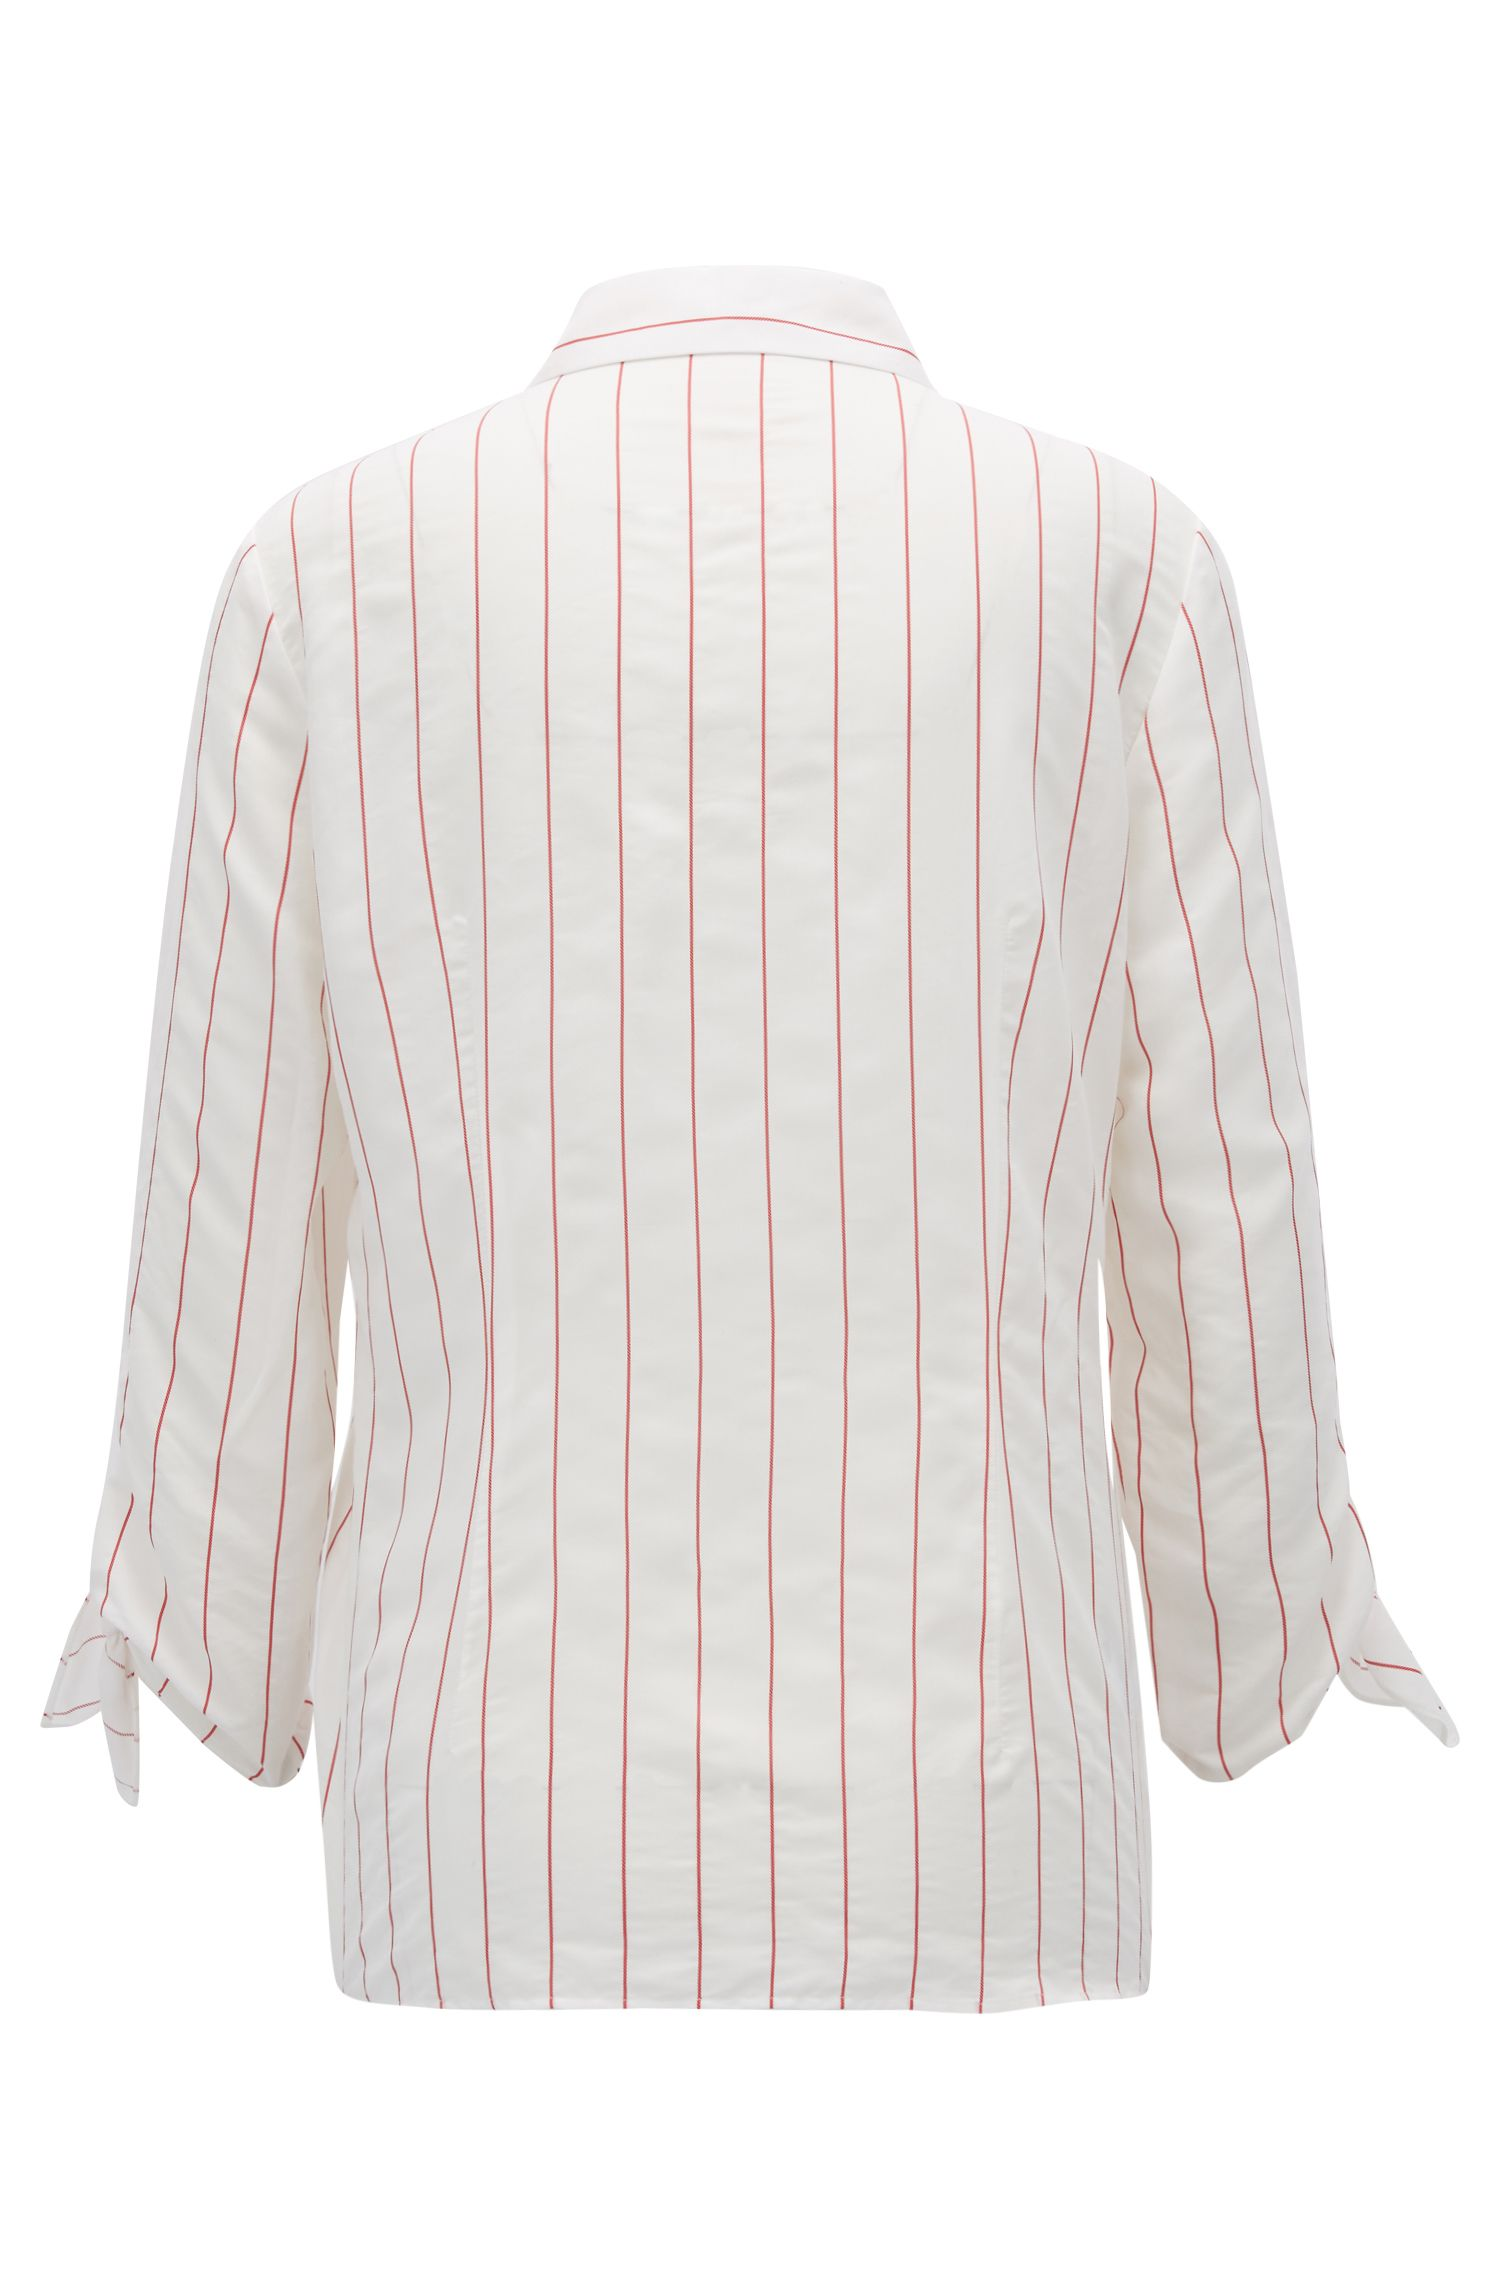 Maritime-striped blouse with tie-sleeve detail, Patterned